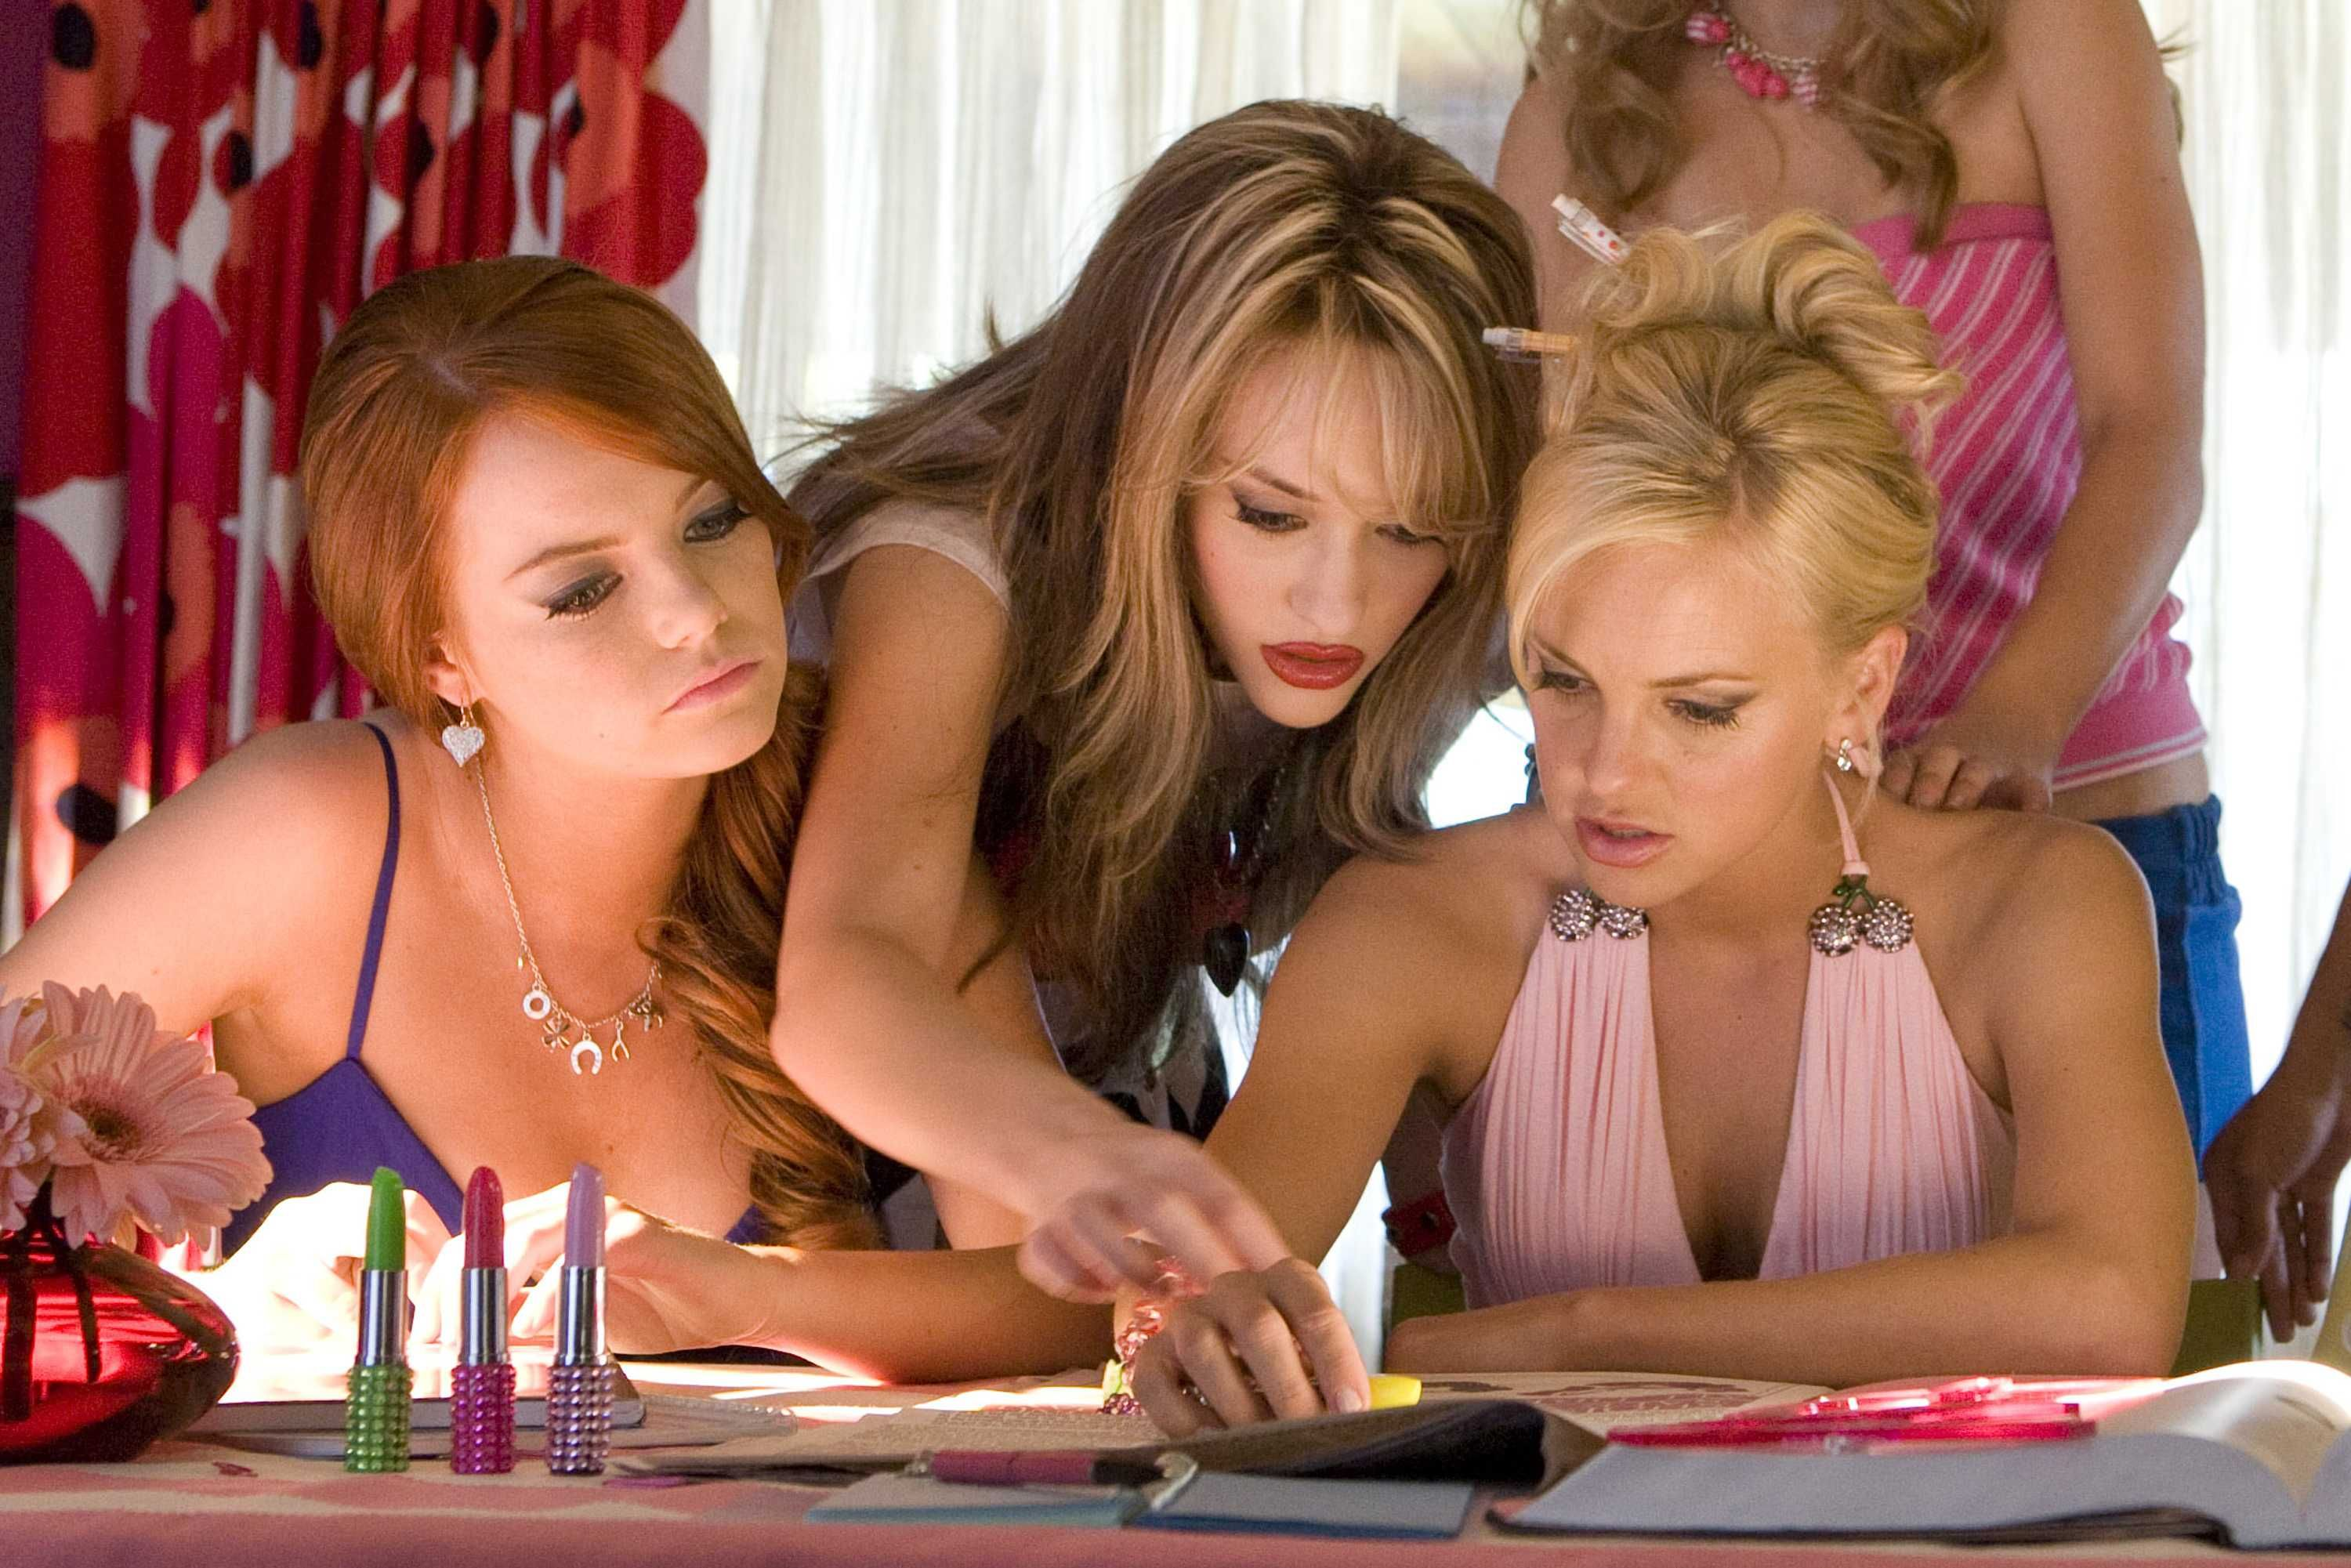 House Bunny Characters intended for emma stone as natalie, kat dennings as mona and anna faris as